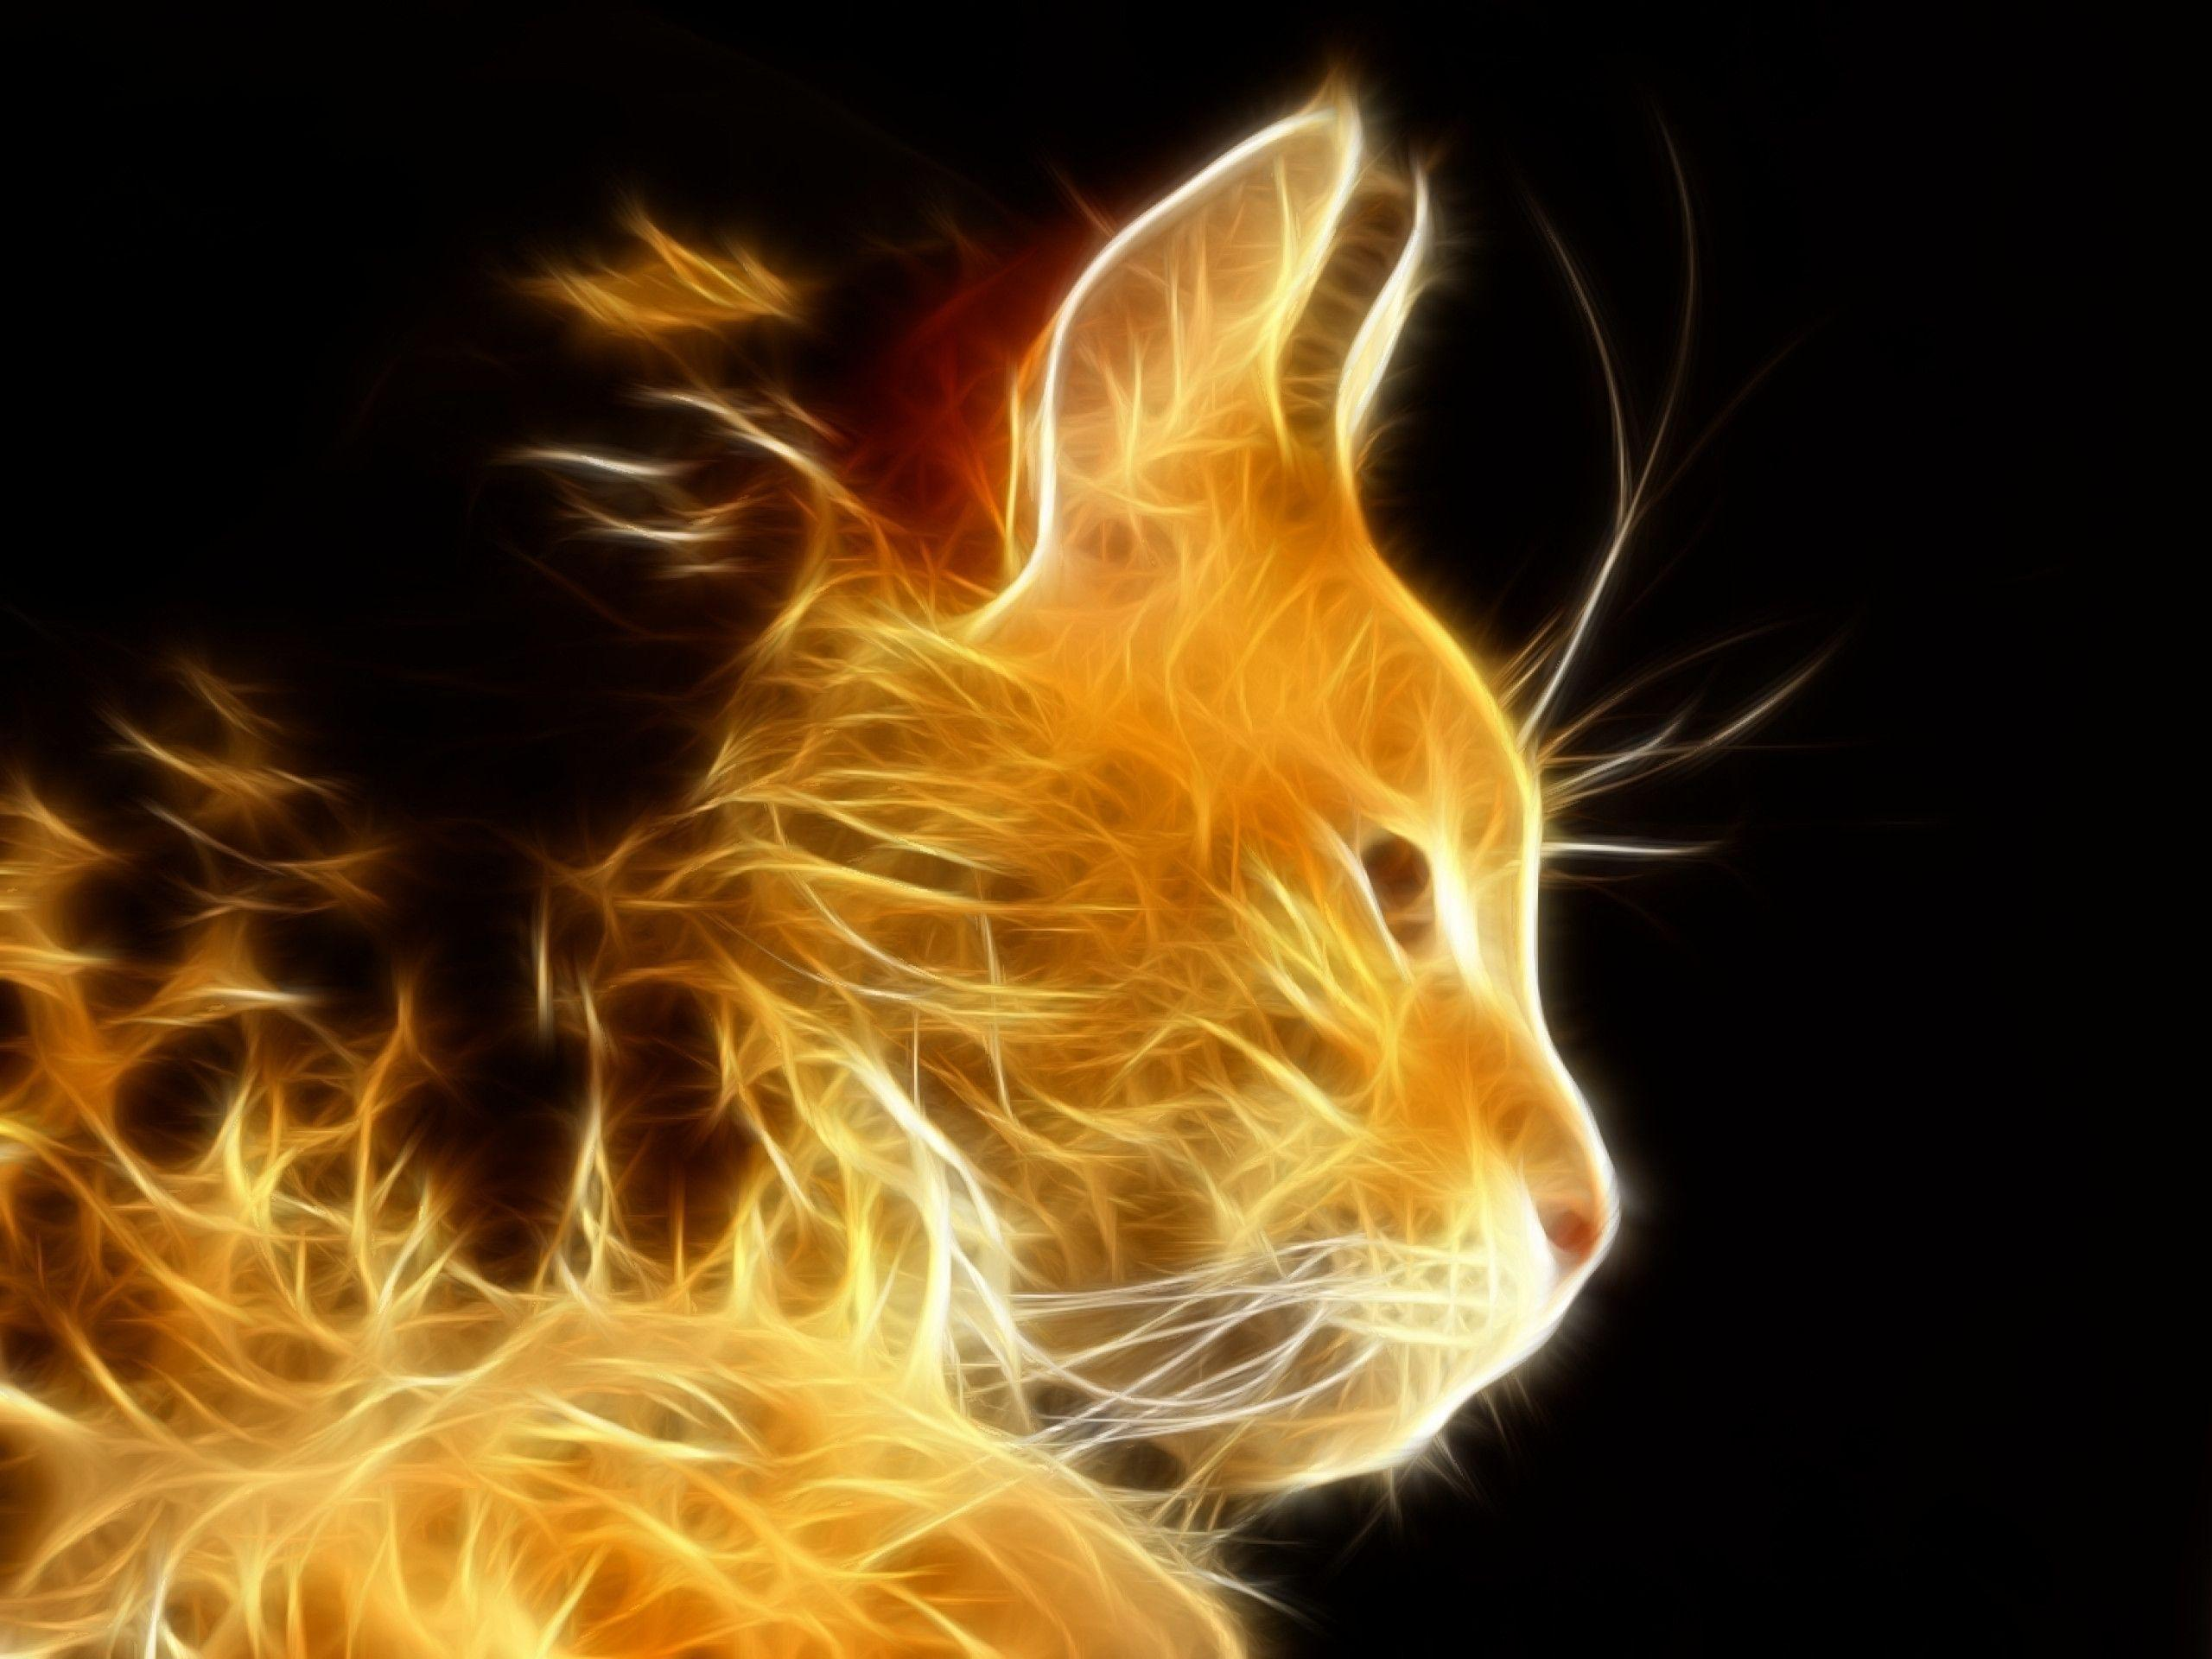 Cool cat backgrounds wallpaper cave for Immagini desktop 1366x768